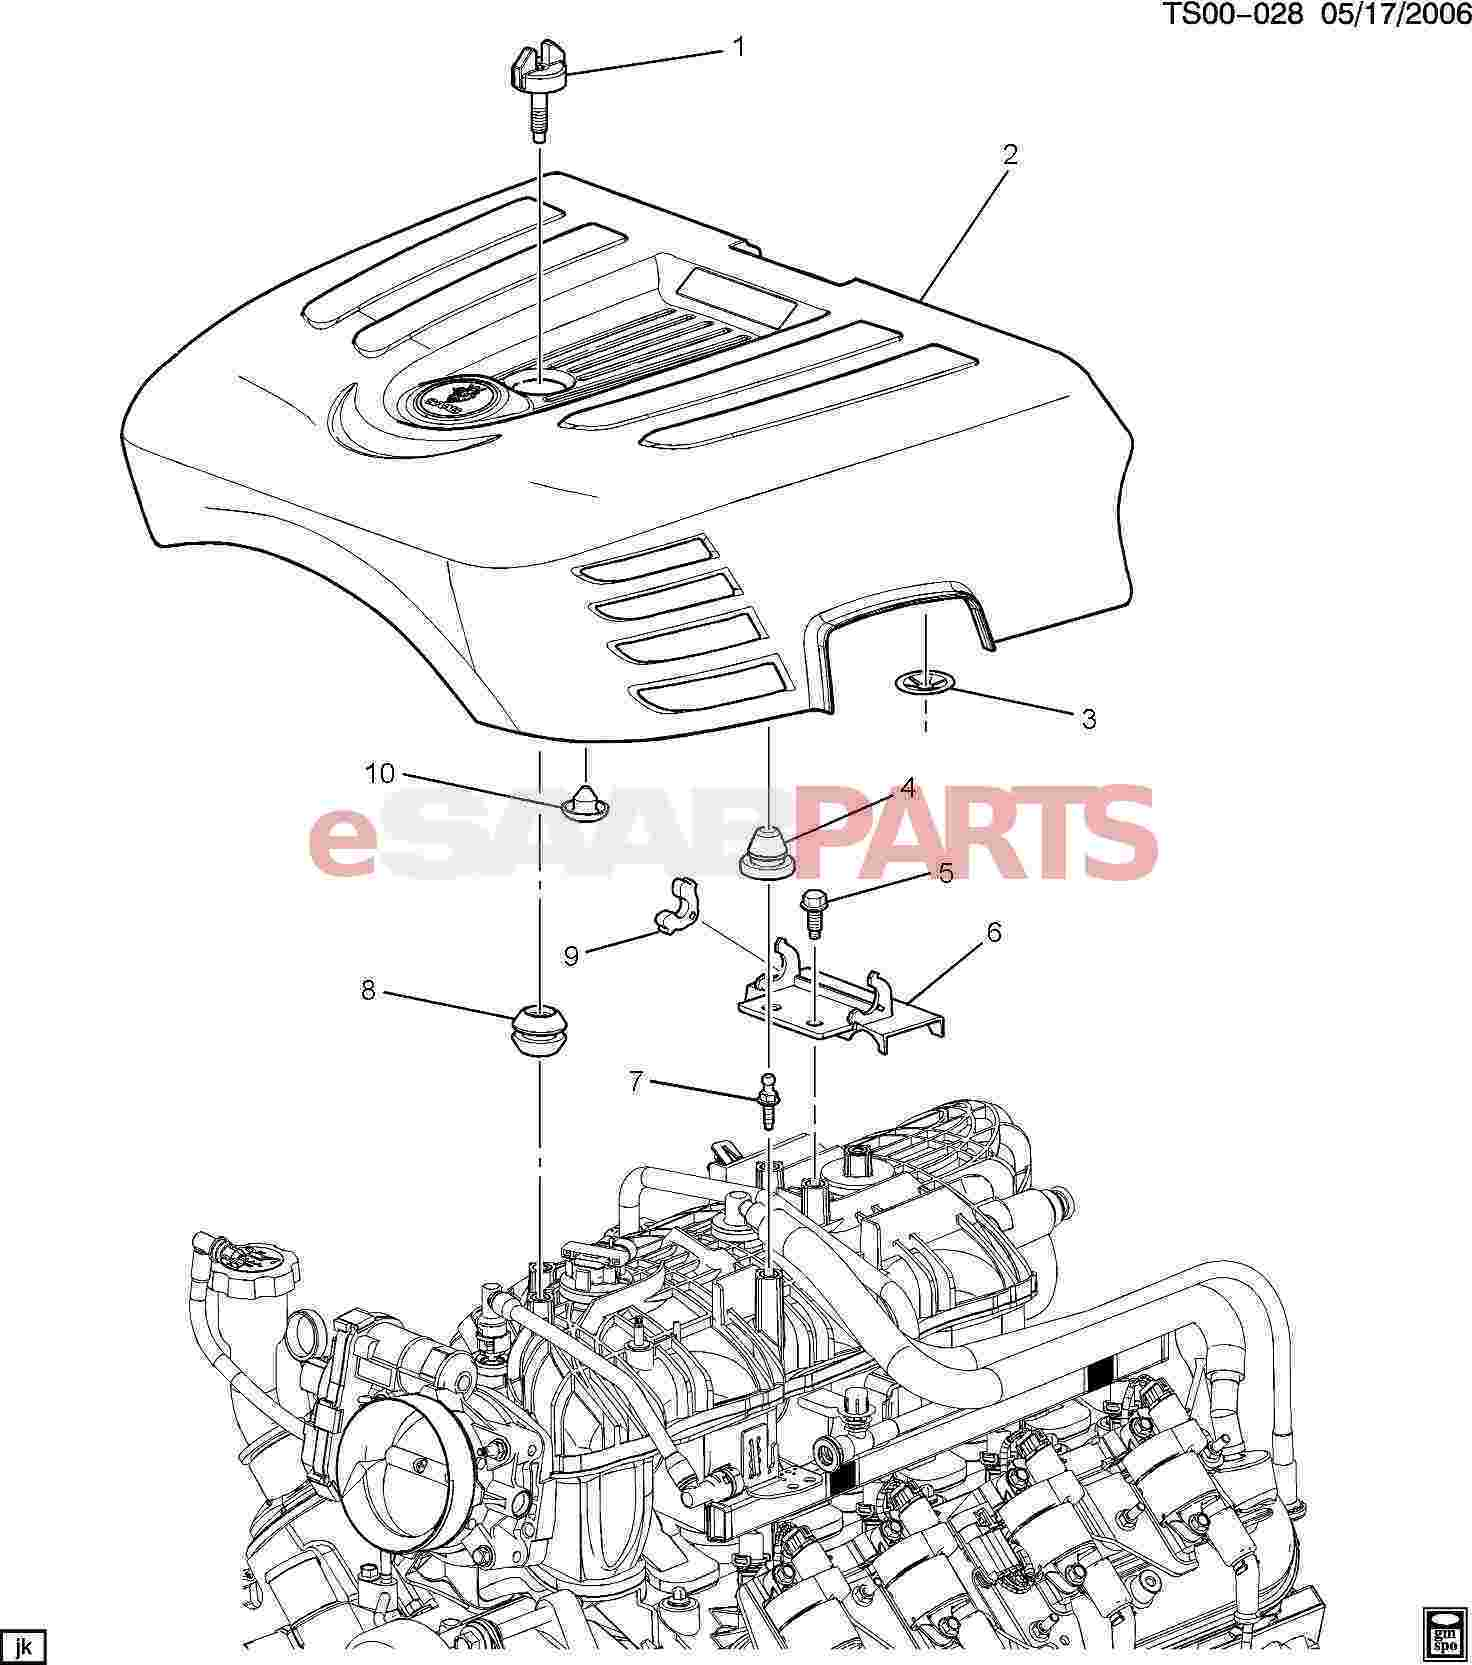 96 Acura 2 5 Engine Diagram furthermore Parts For 1993 Geo Metro also 1992 Nissan 300zx Engine Diagram also 92 S10 Radio Wiring Diagram moreover Wiring Diagram 92 Chevy Silverado. on 1992 geo metro engine diagrams